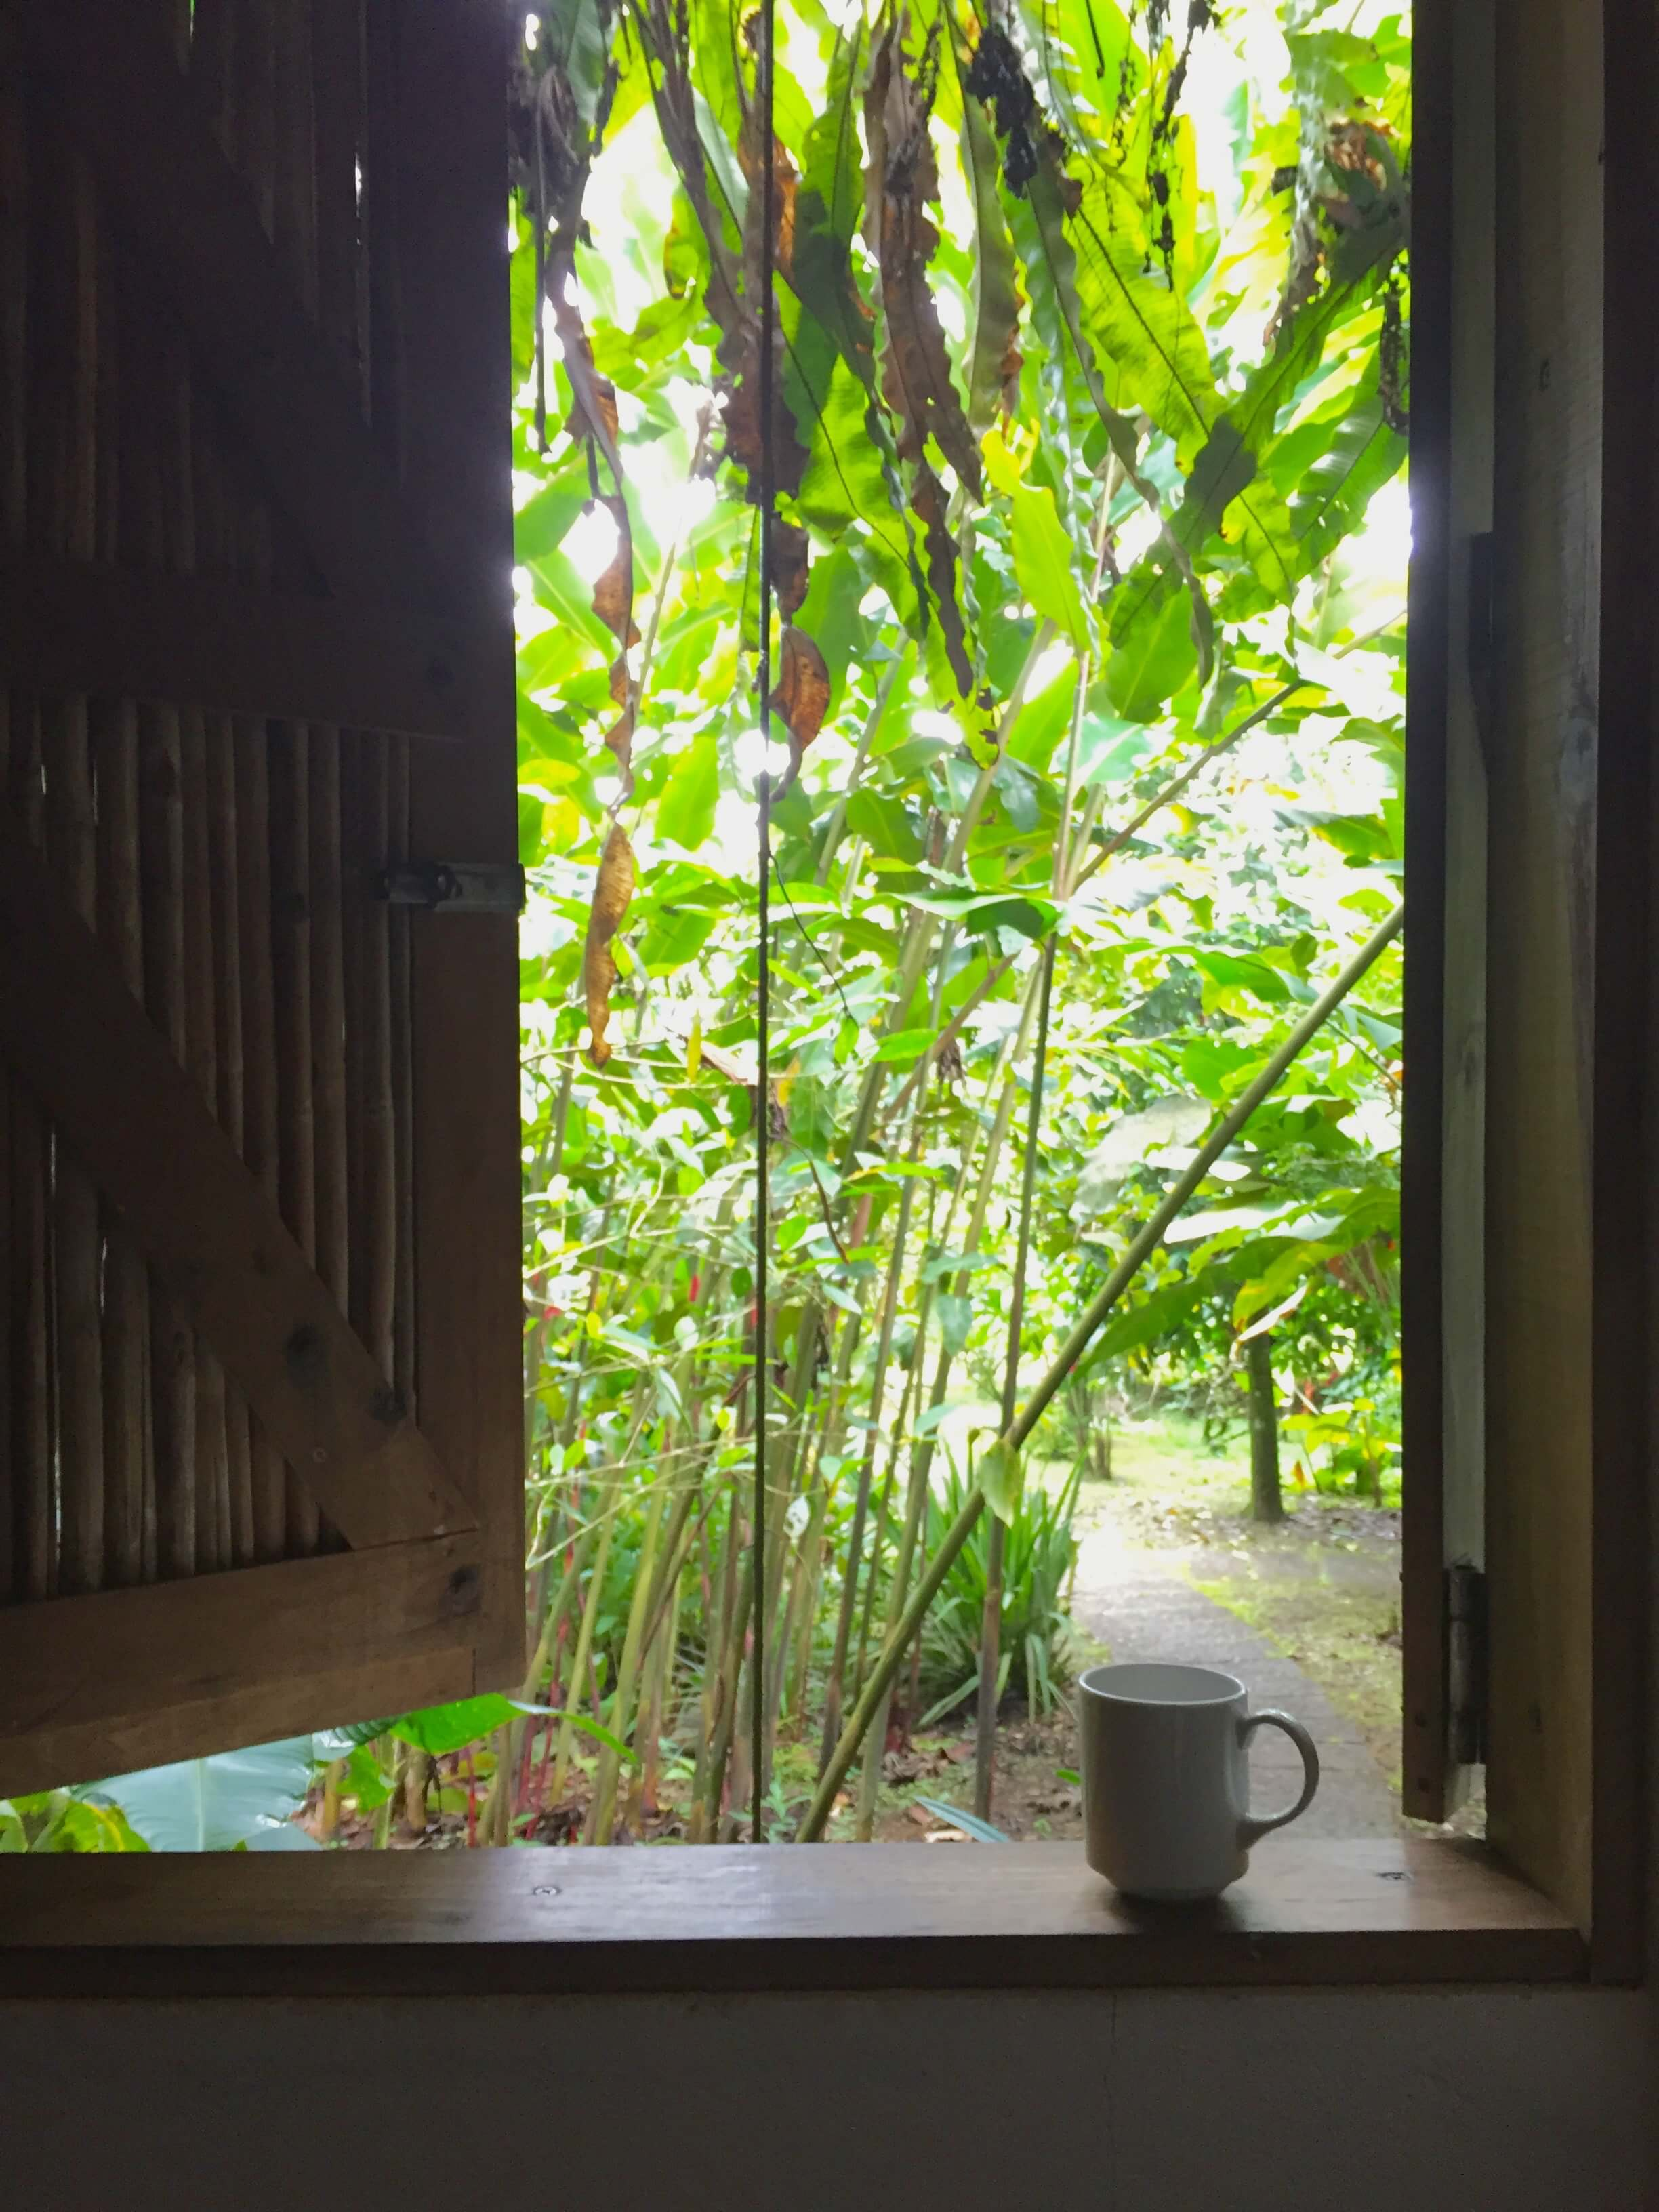 blog-costa-rica-9-days-rancho-margot-morning-view